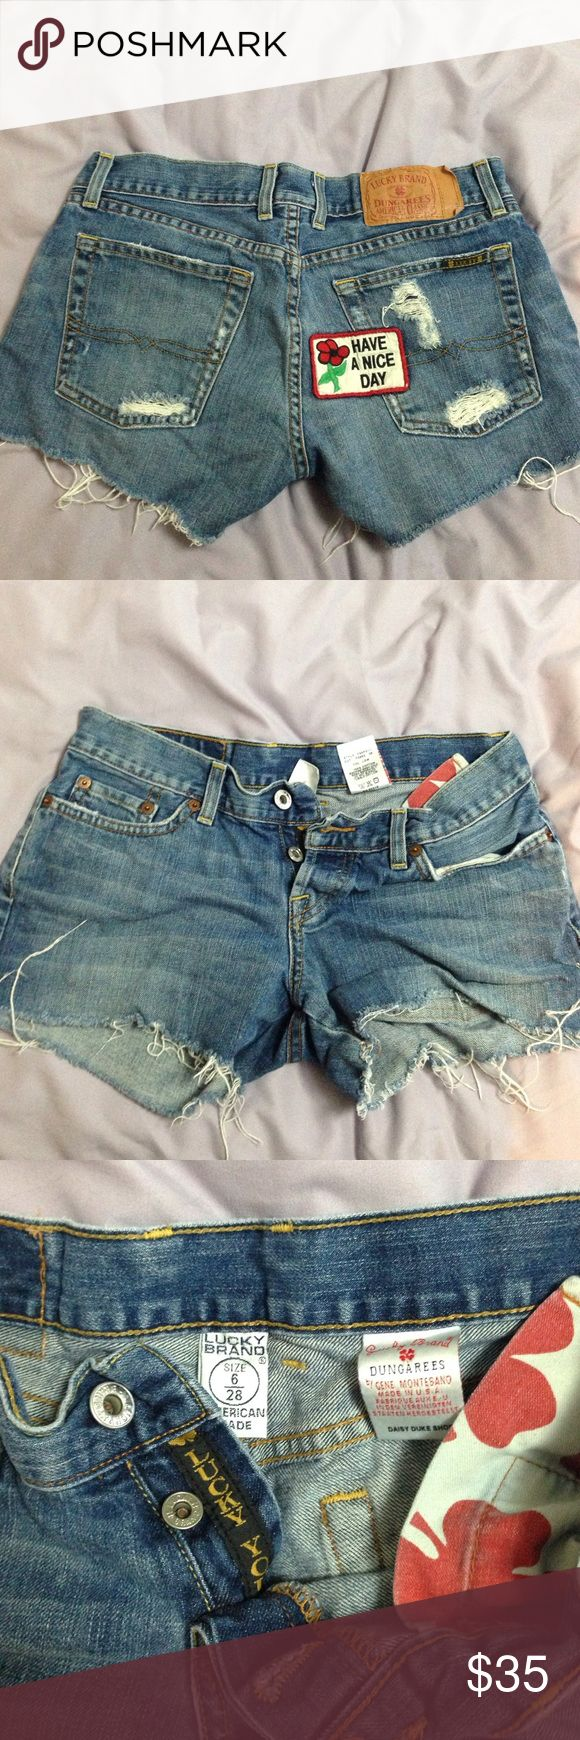 "CUTE Lucky brand daisy duke shorts with patch ""Have a nice day"" on the butt, worn once! These are SUPER cute lucky brand dungaree shorts, daisy duke style. Love these shorts! Size 28/6 get them now before they're gone!! Lucky Brand Shorts Jean Shorts"